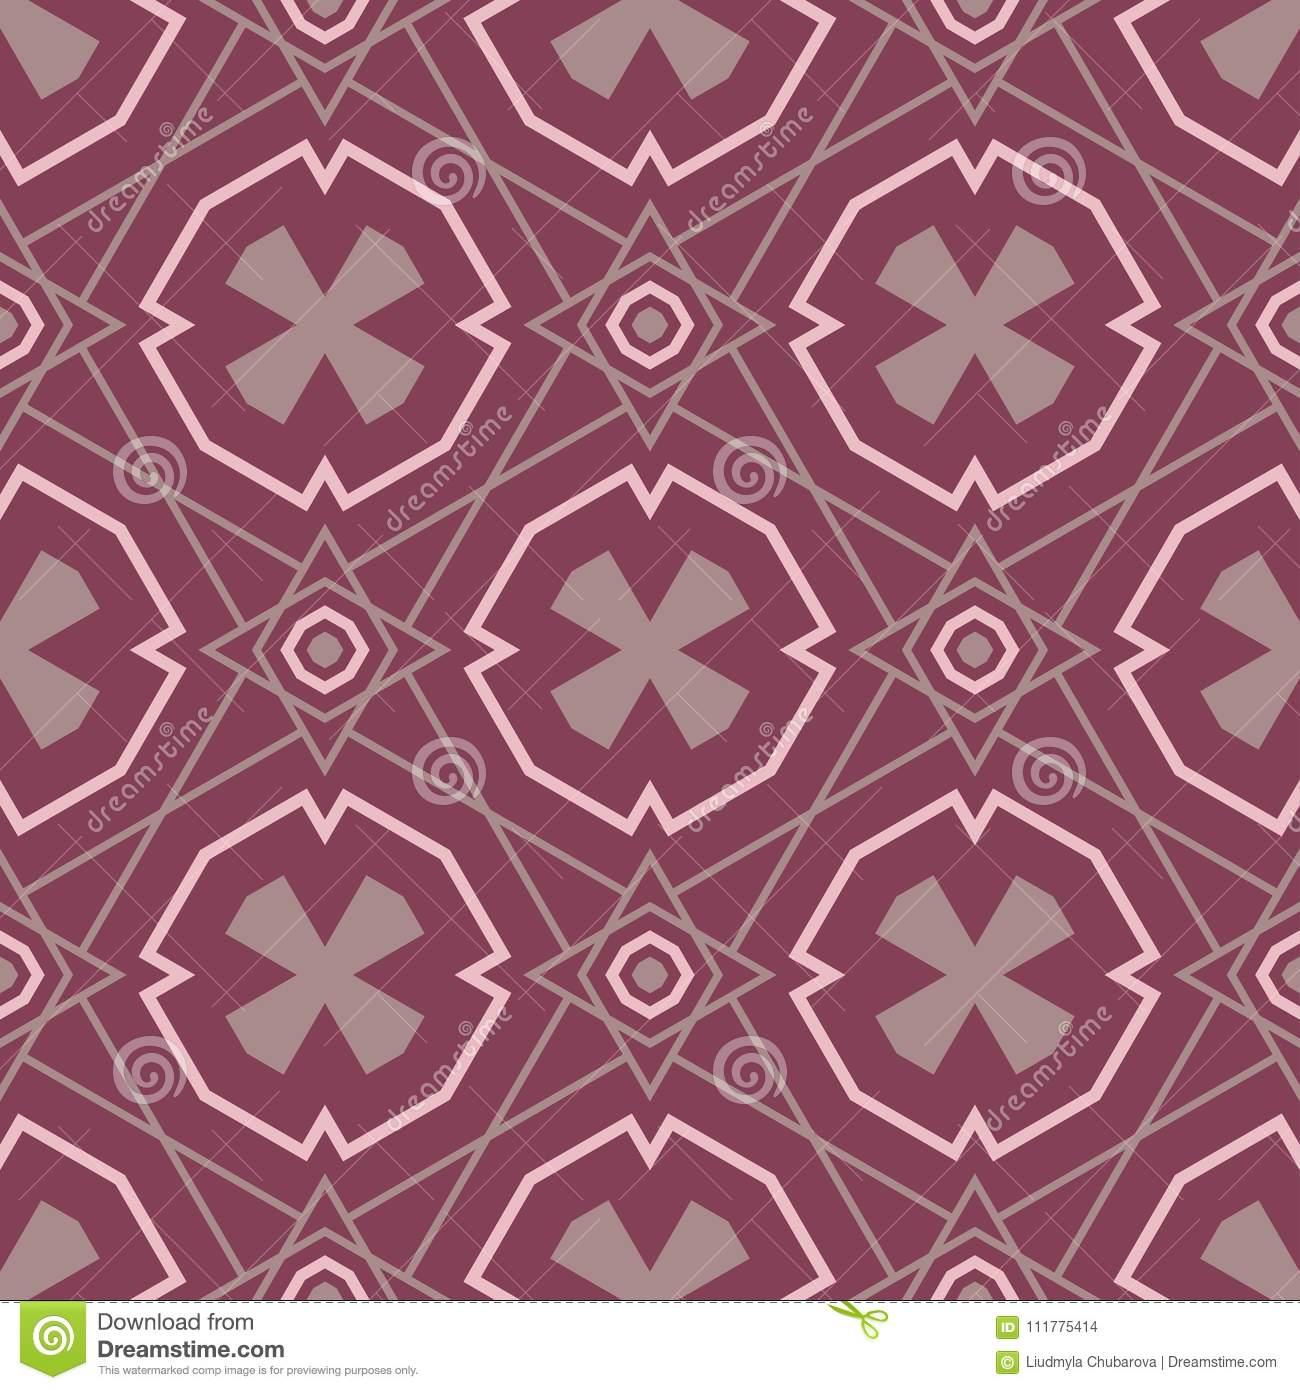 Seamless pattern with geometric elements. Dark red background